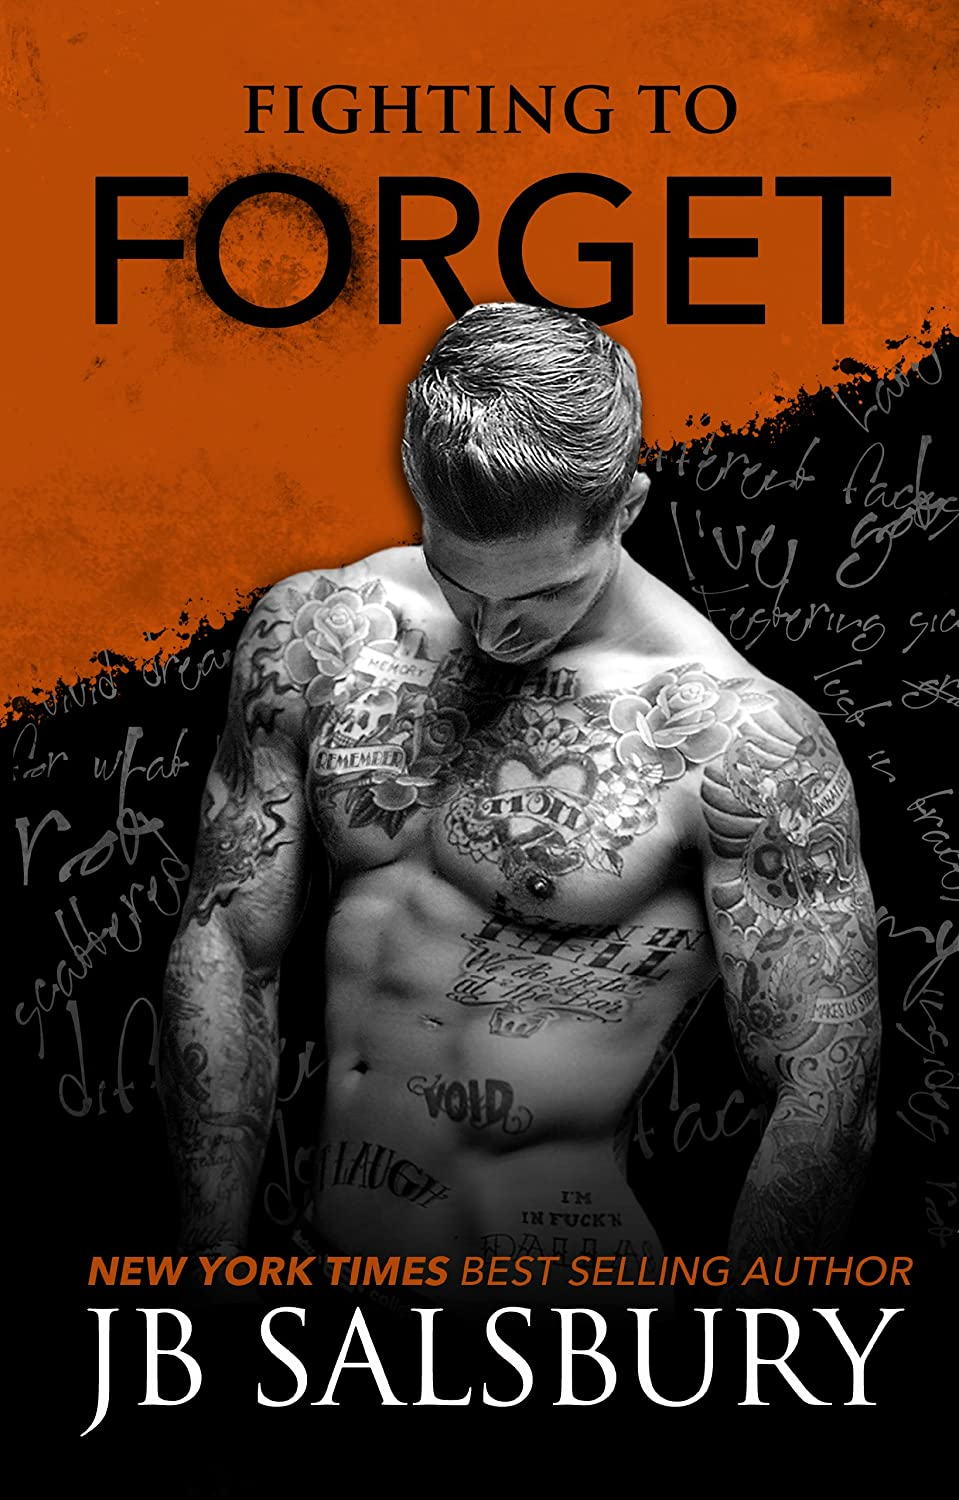 The cover of Fighting to Forget